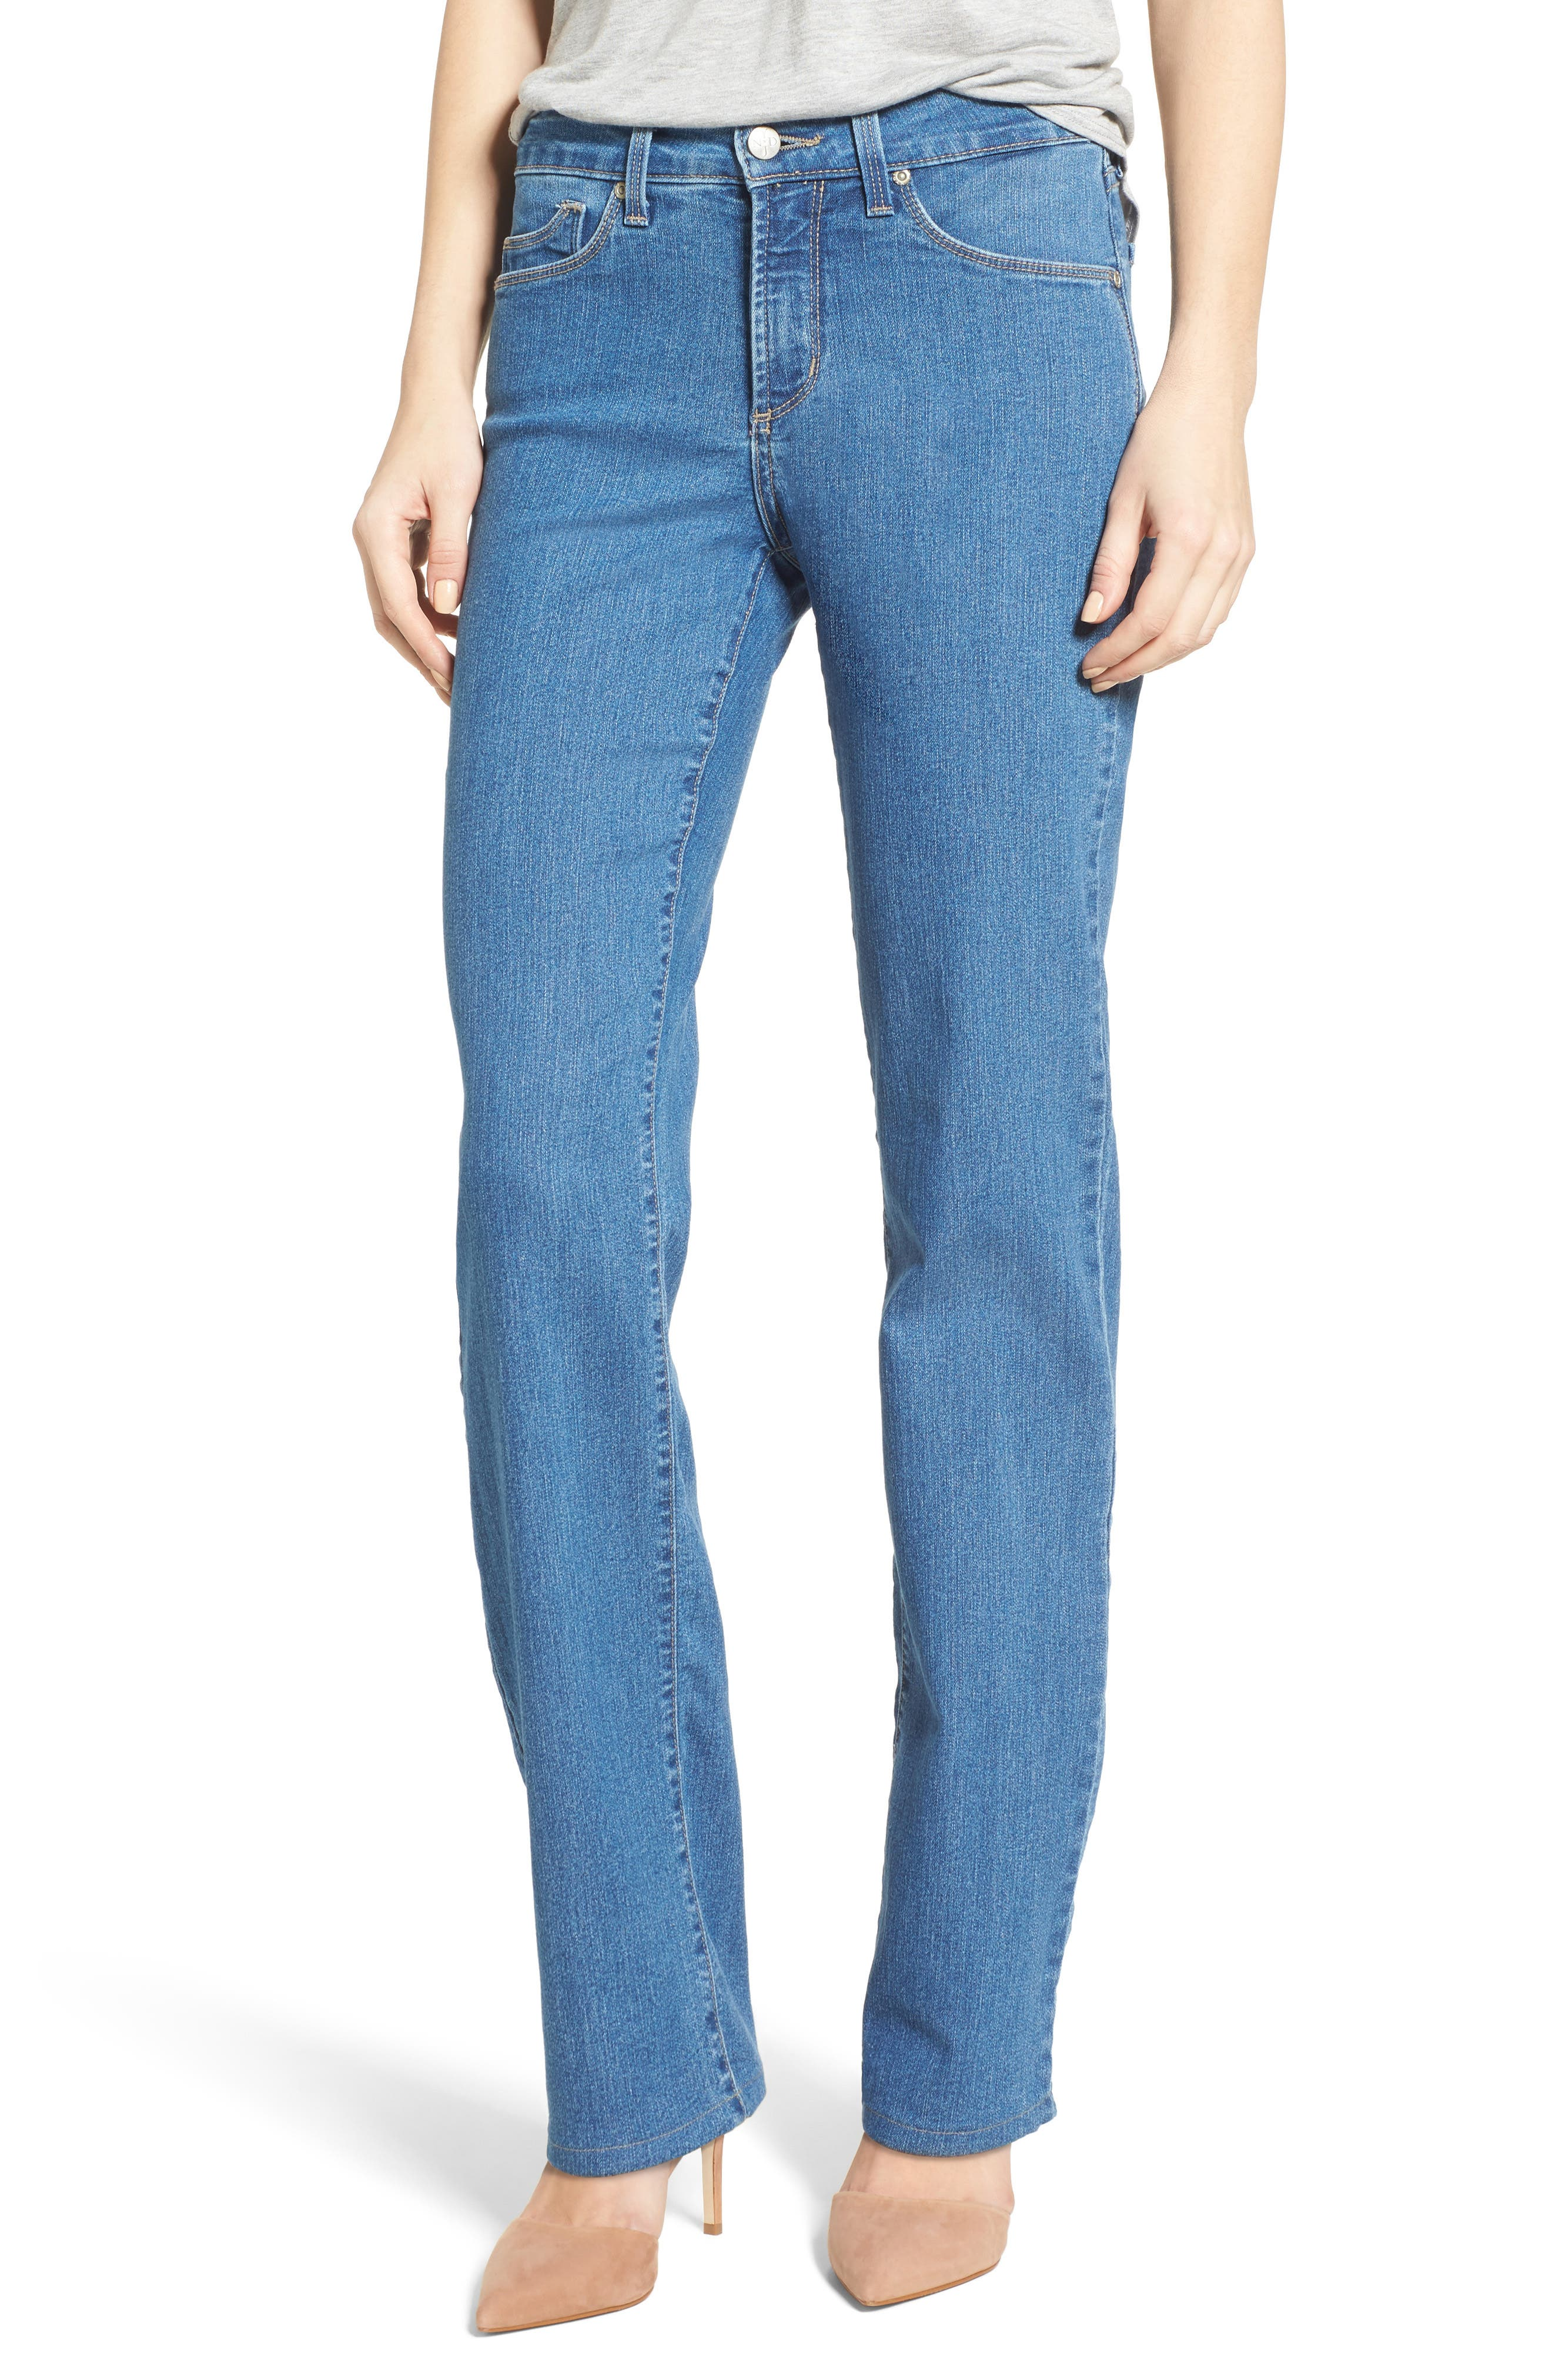 Marilyn Stretch Straight Leg Jeans,                         Main,                         color, 424